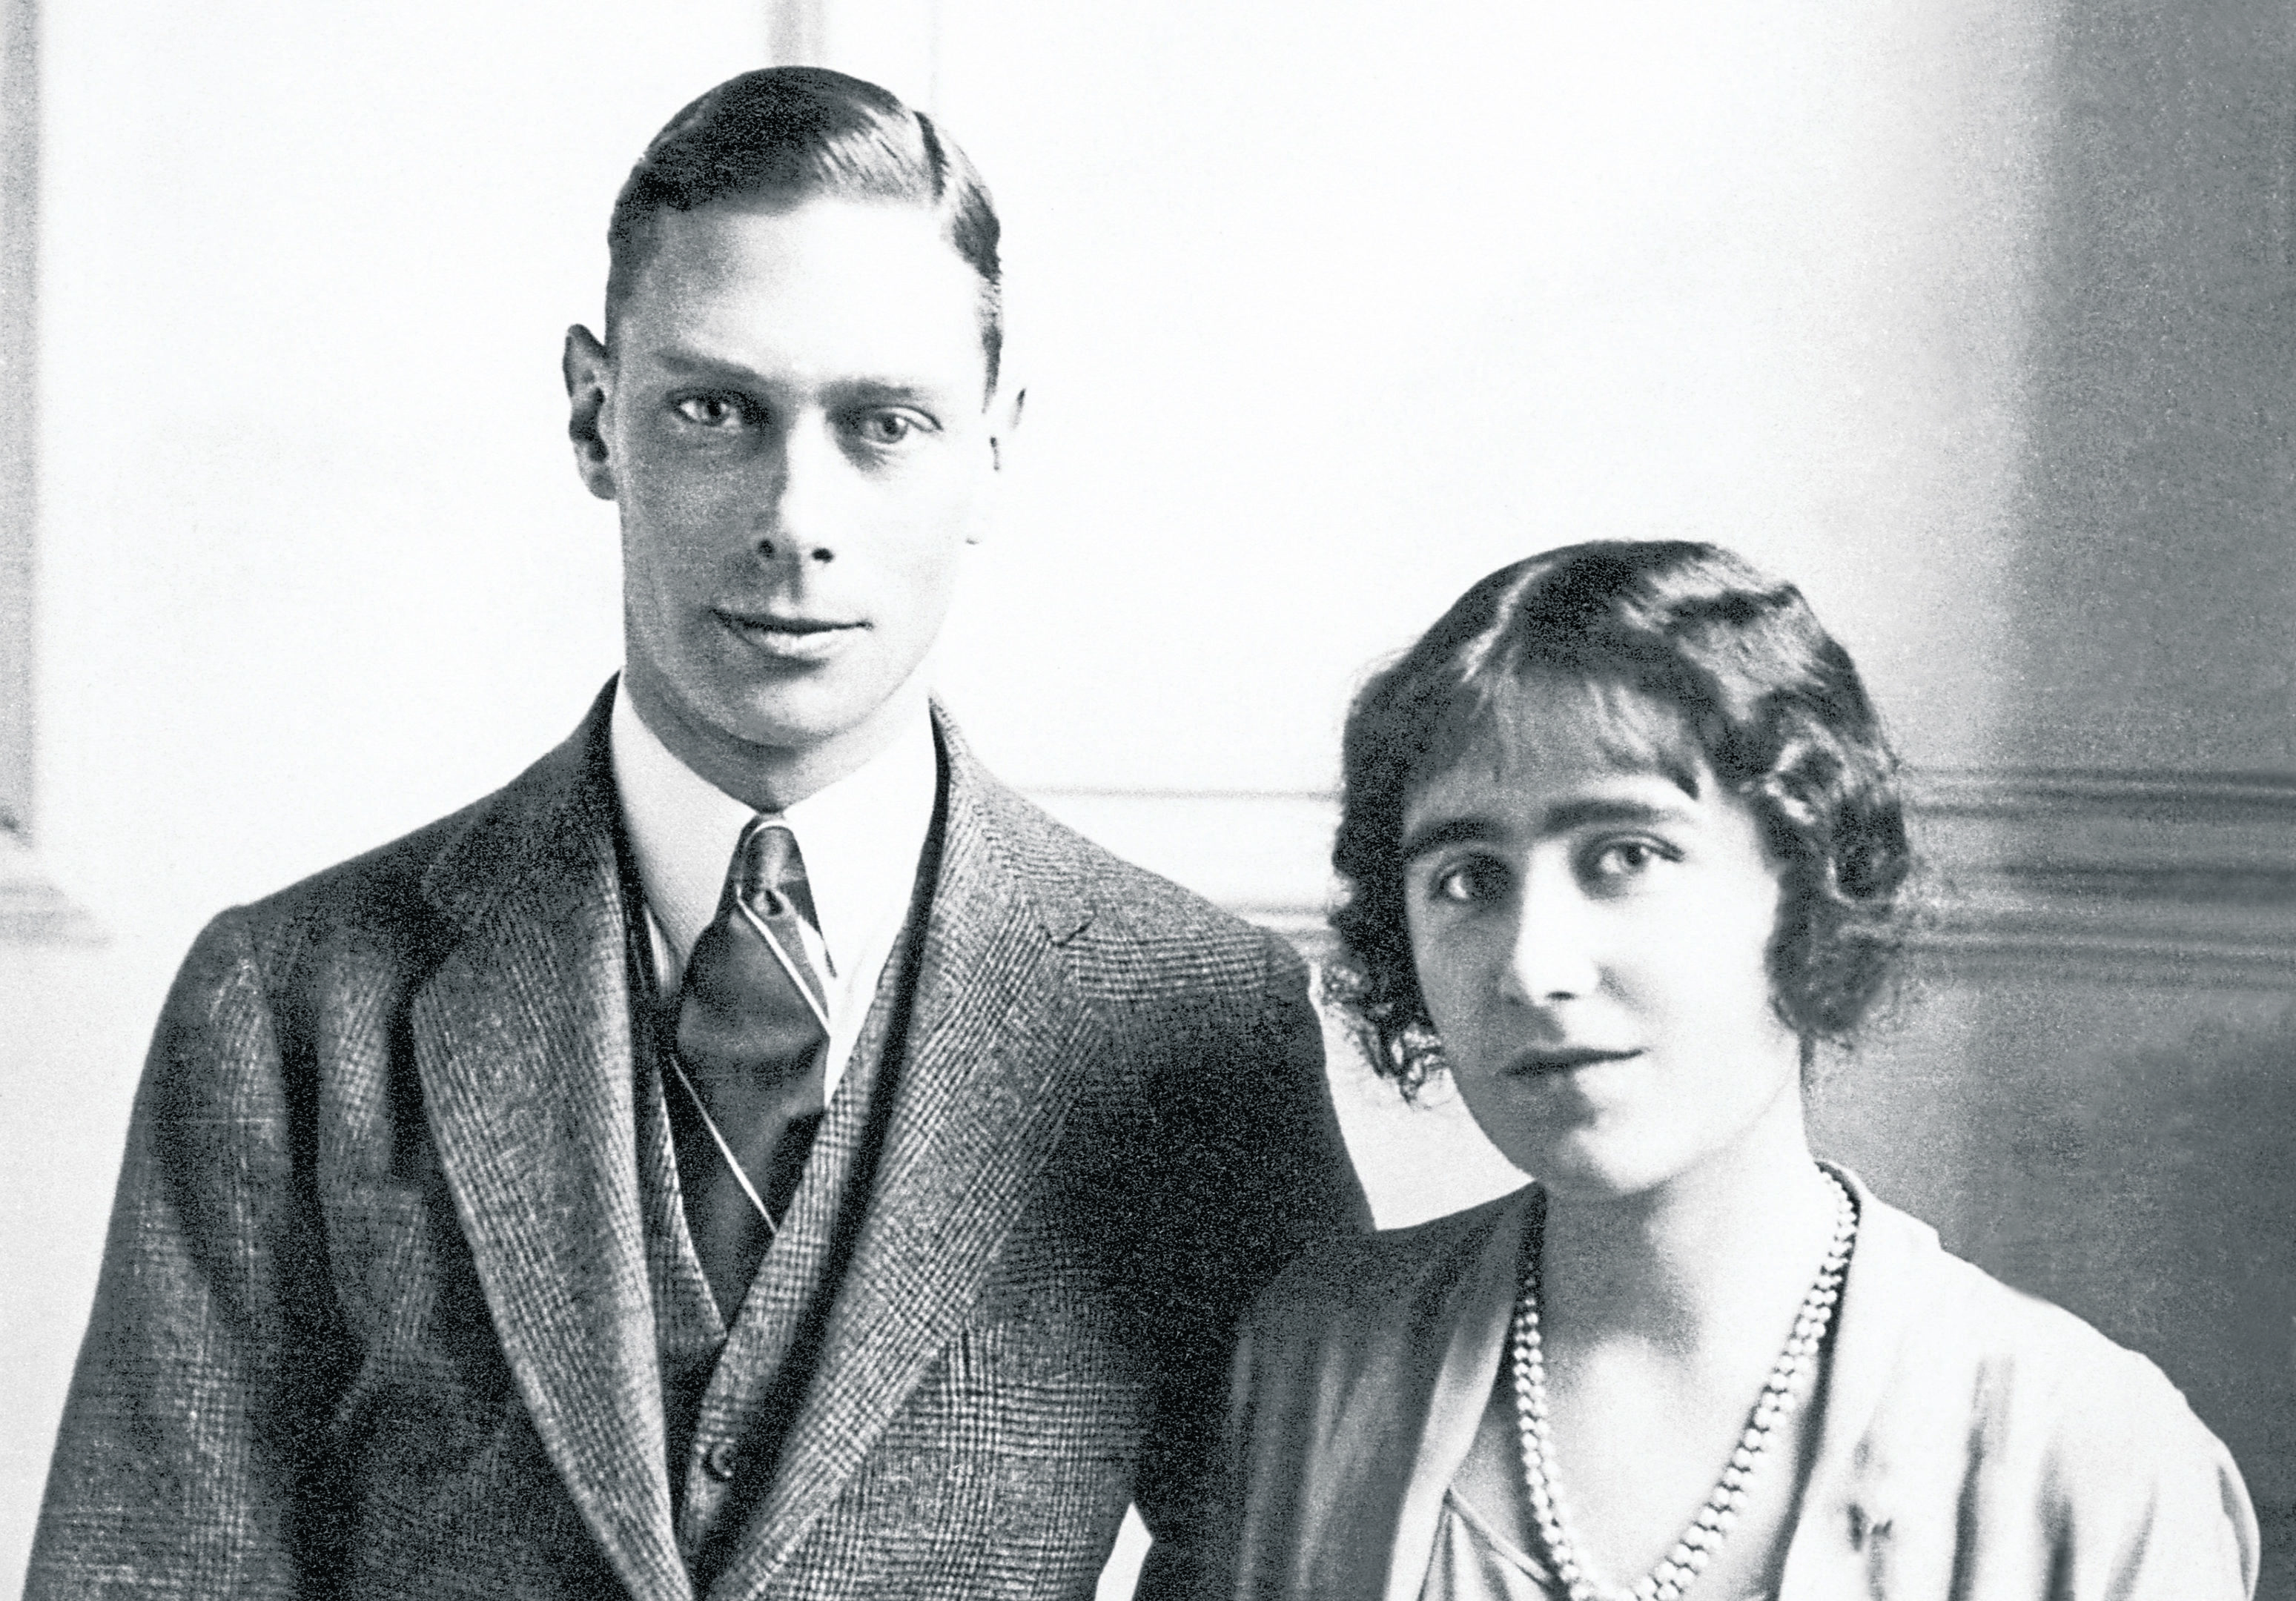 Prince Albert, later King George VI, with Lady Elizabeth Bowes-Lyon, later Queen Elizabeth